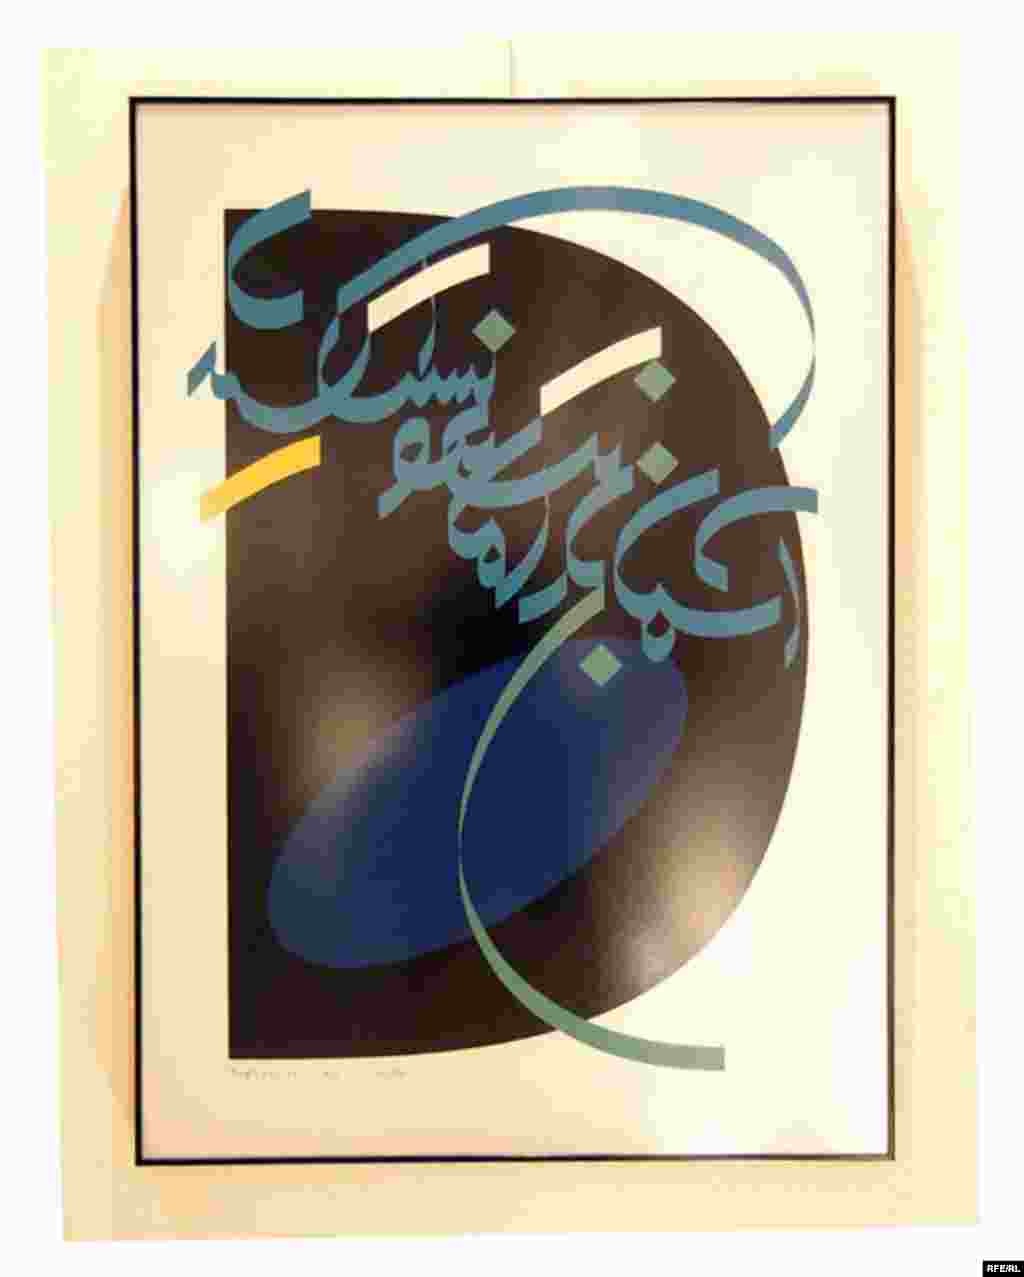 Iran -- Art exhibition in Dubai, Ebrahim Haghighi's work, One of Iranian famous graphics, 07Jun2008